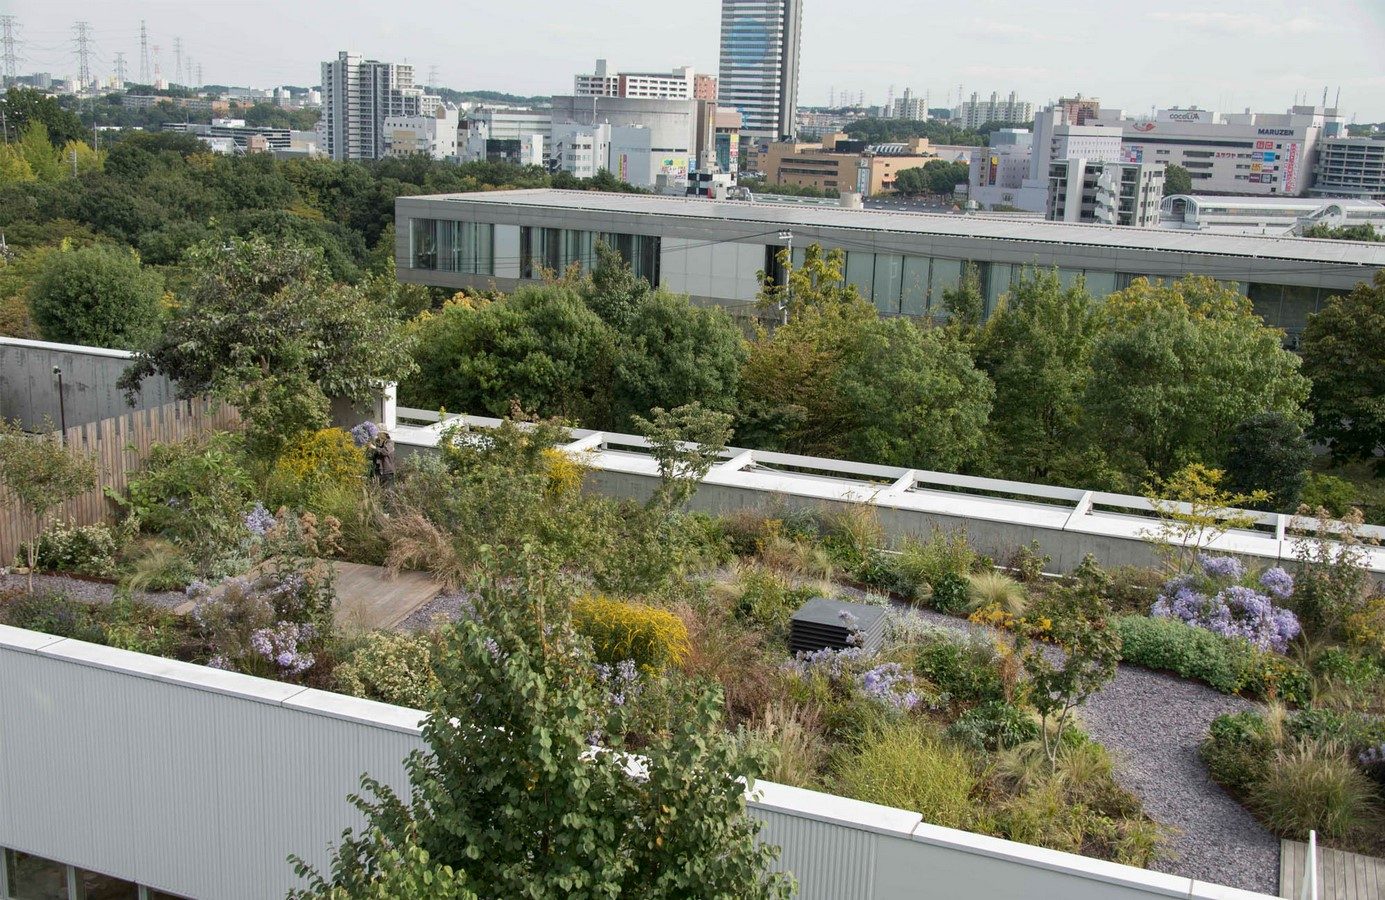 10 things to remember when designing rooftop gardens - Sheet19